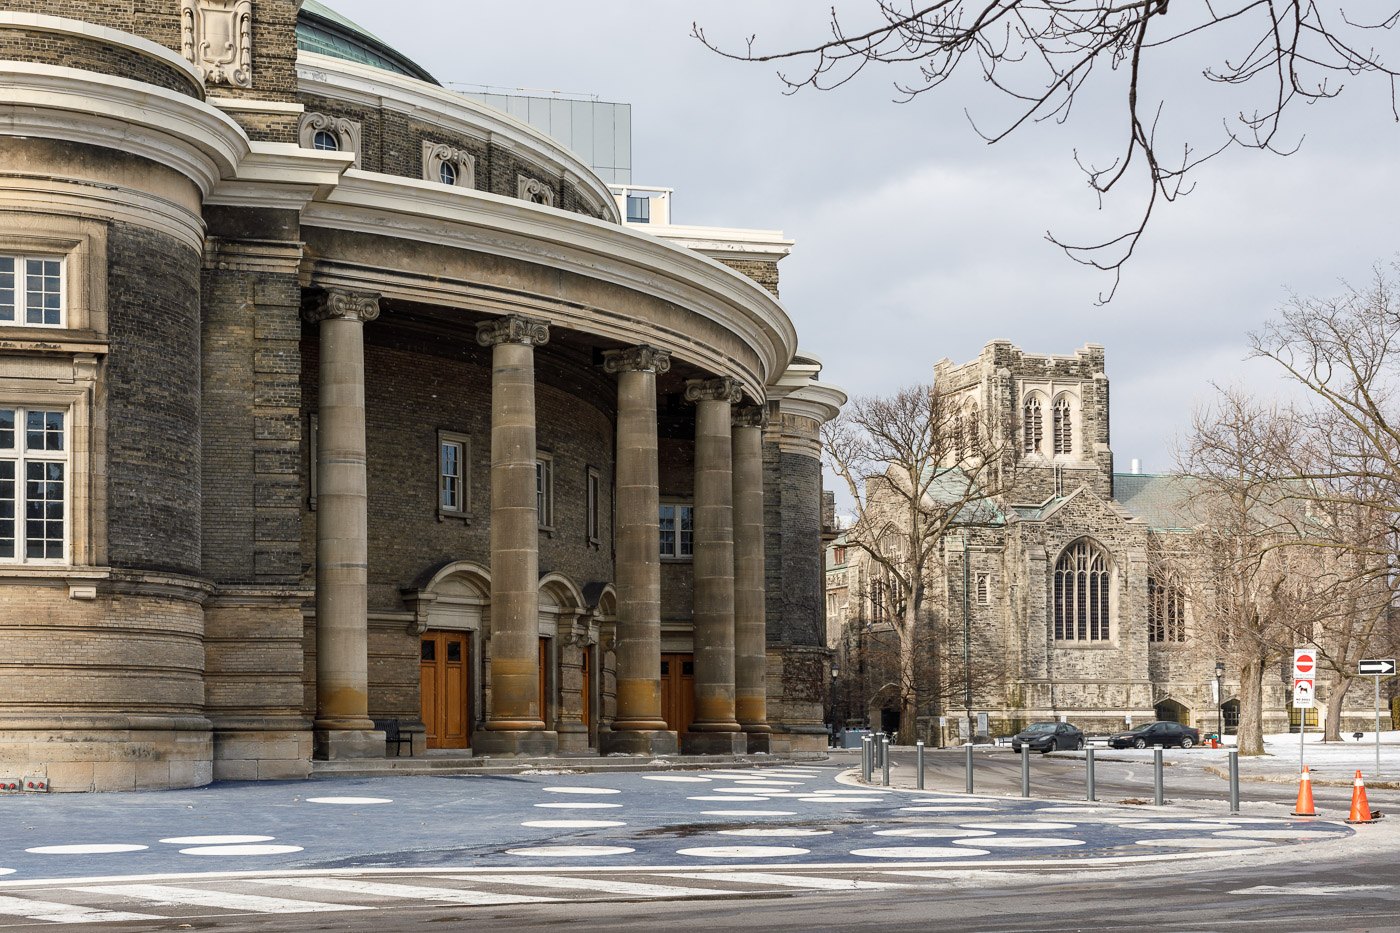 Convocation Hall, University of Toronto